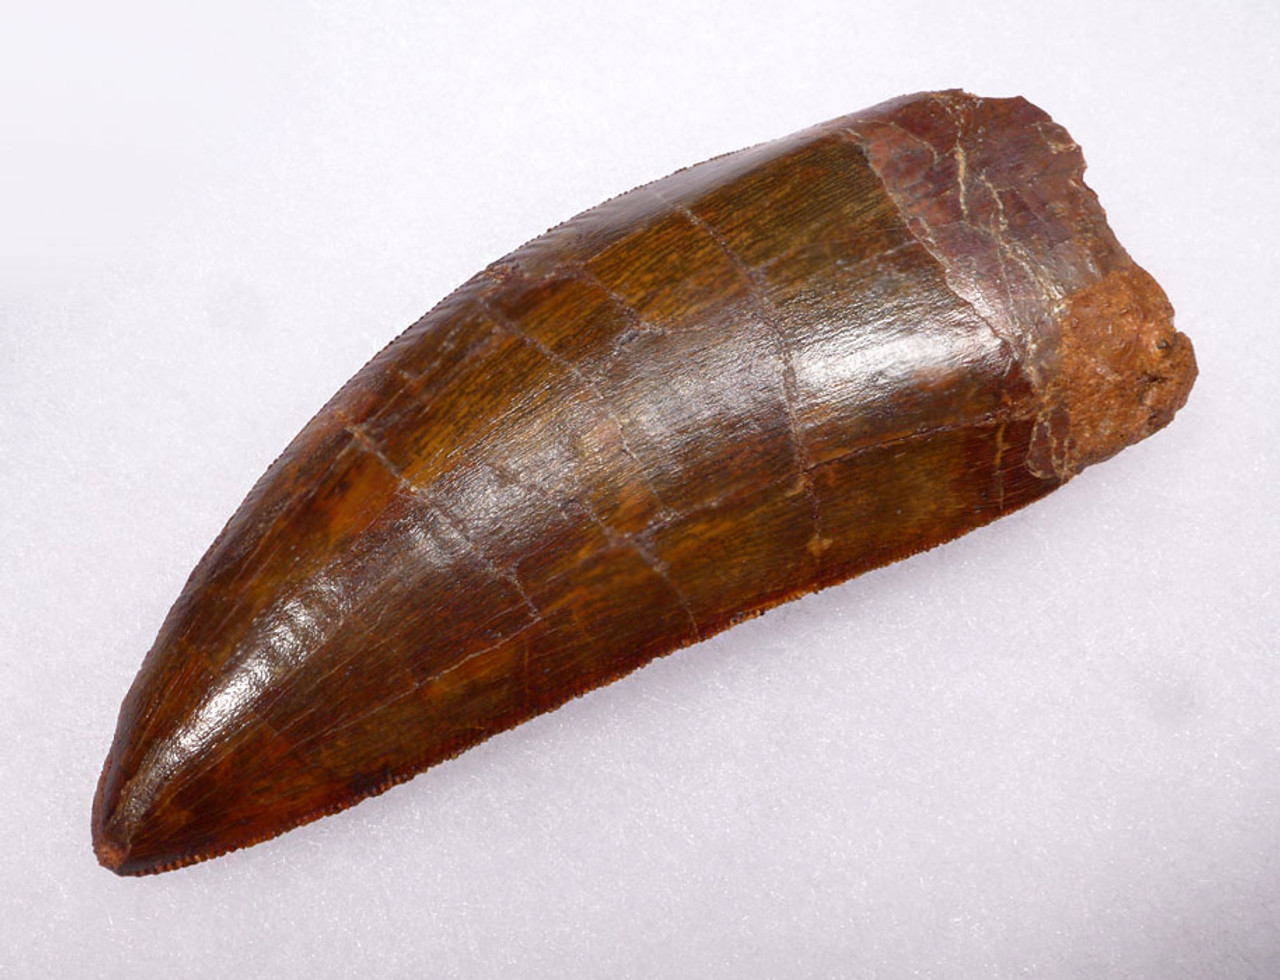 DT2-047 - UNBROKEN STUNNINGLY BEAUTIFUL INVESTMENT-CLASS 3.75 INCH CARCHARODONTOSAURUS DINOSAUR TOOTH